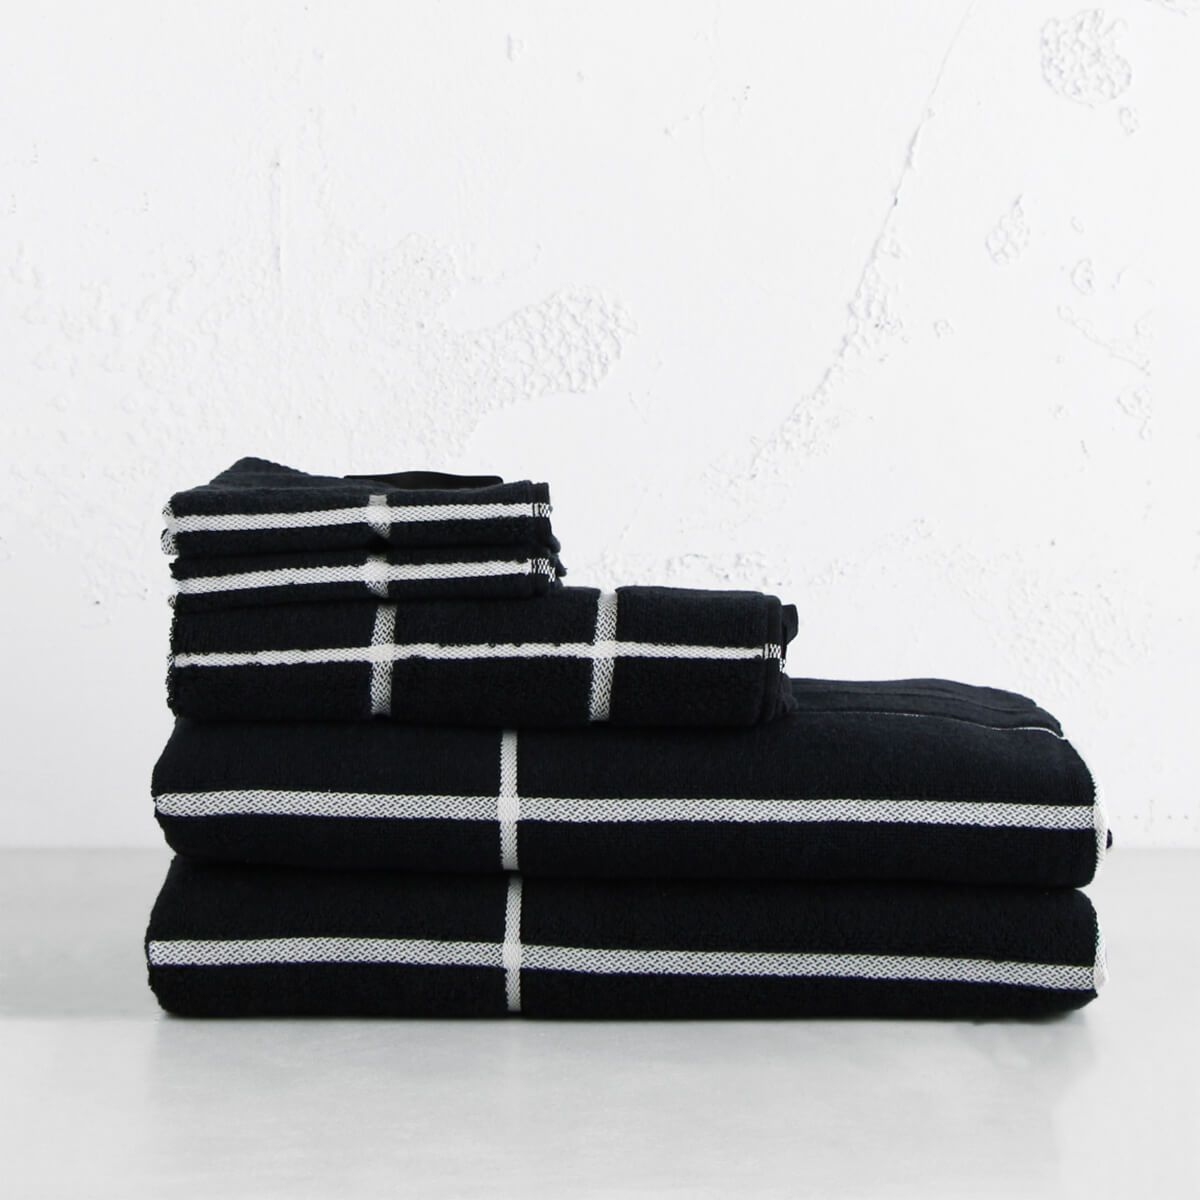 MARIMEKKO  |  TIILISKIVI BATH BUNDLE DOUBLE  |  BLACK & WHITE |  MODERN BATHROOM BUNDLE